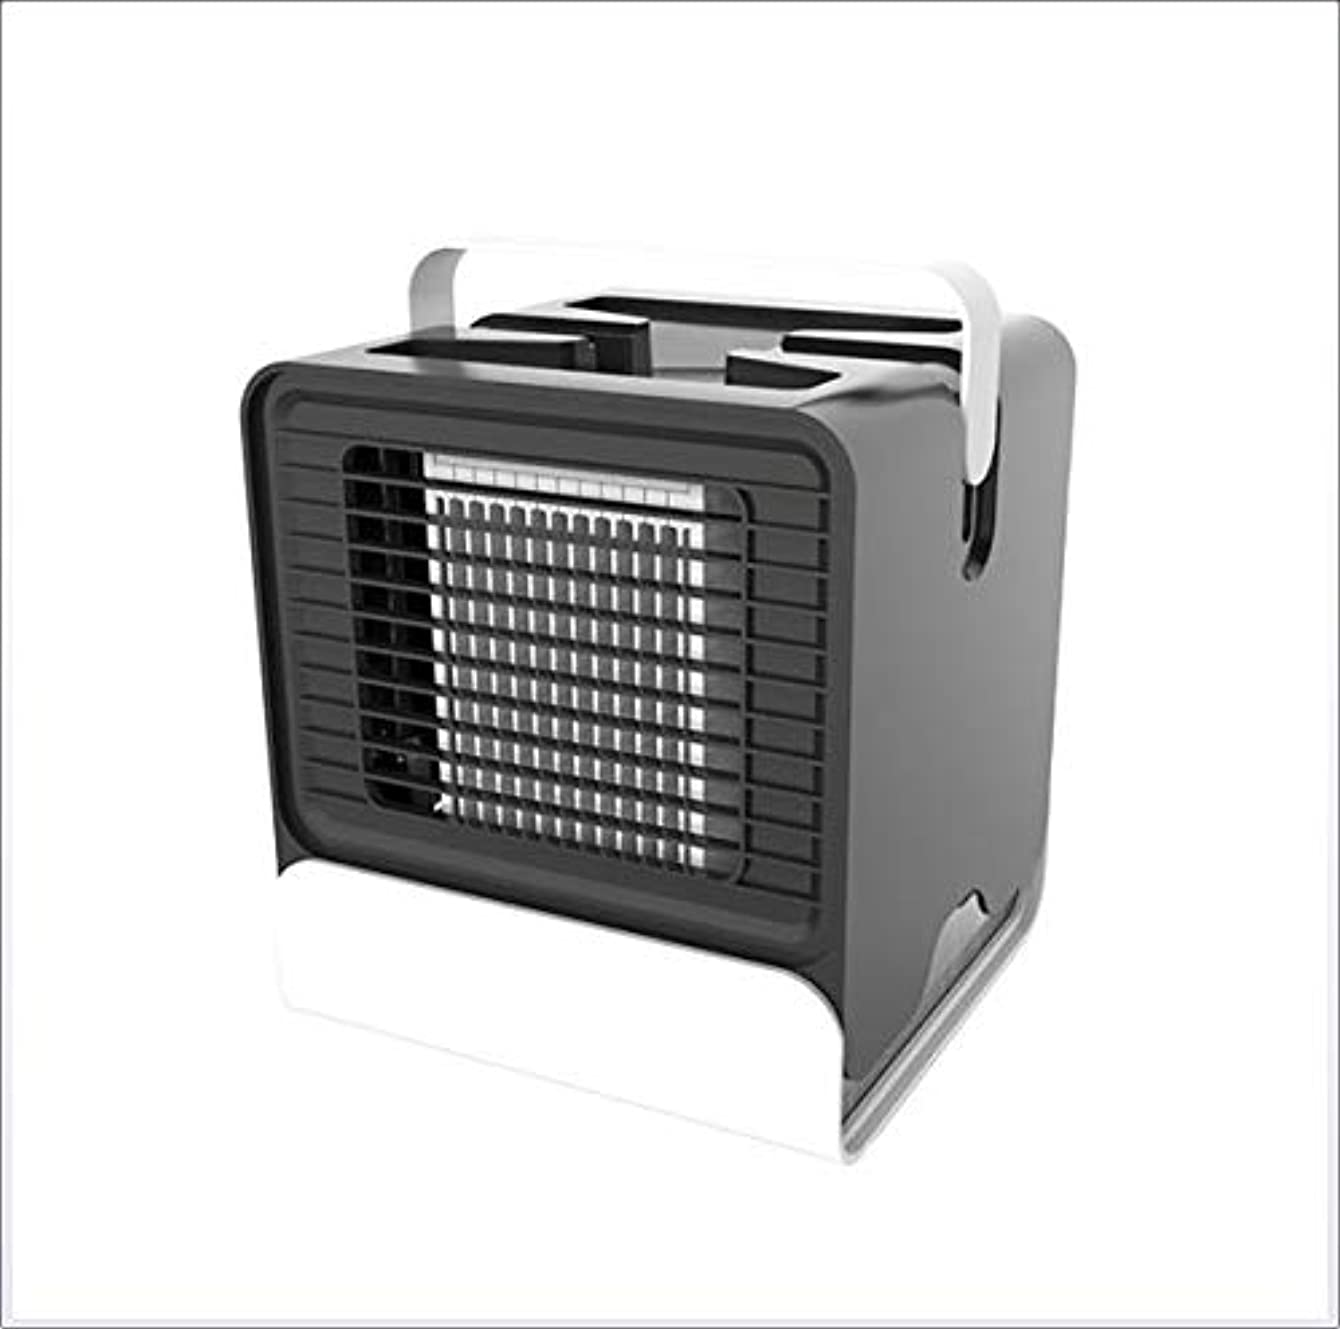 LBJ Portable Air Conditioning Fan, Air Cooler, Personal Air Cooler, USB Desktop Mini Cooling Fan, Evaporative Cooler, Suitable for Office, Indoor, Outdoor